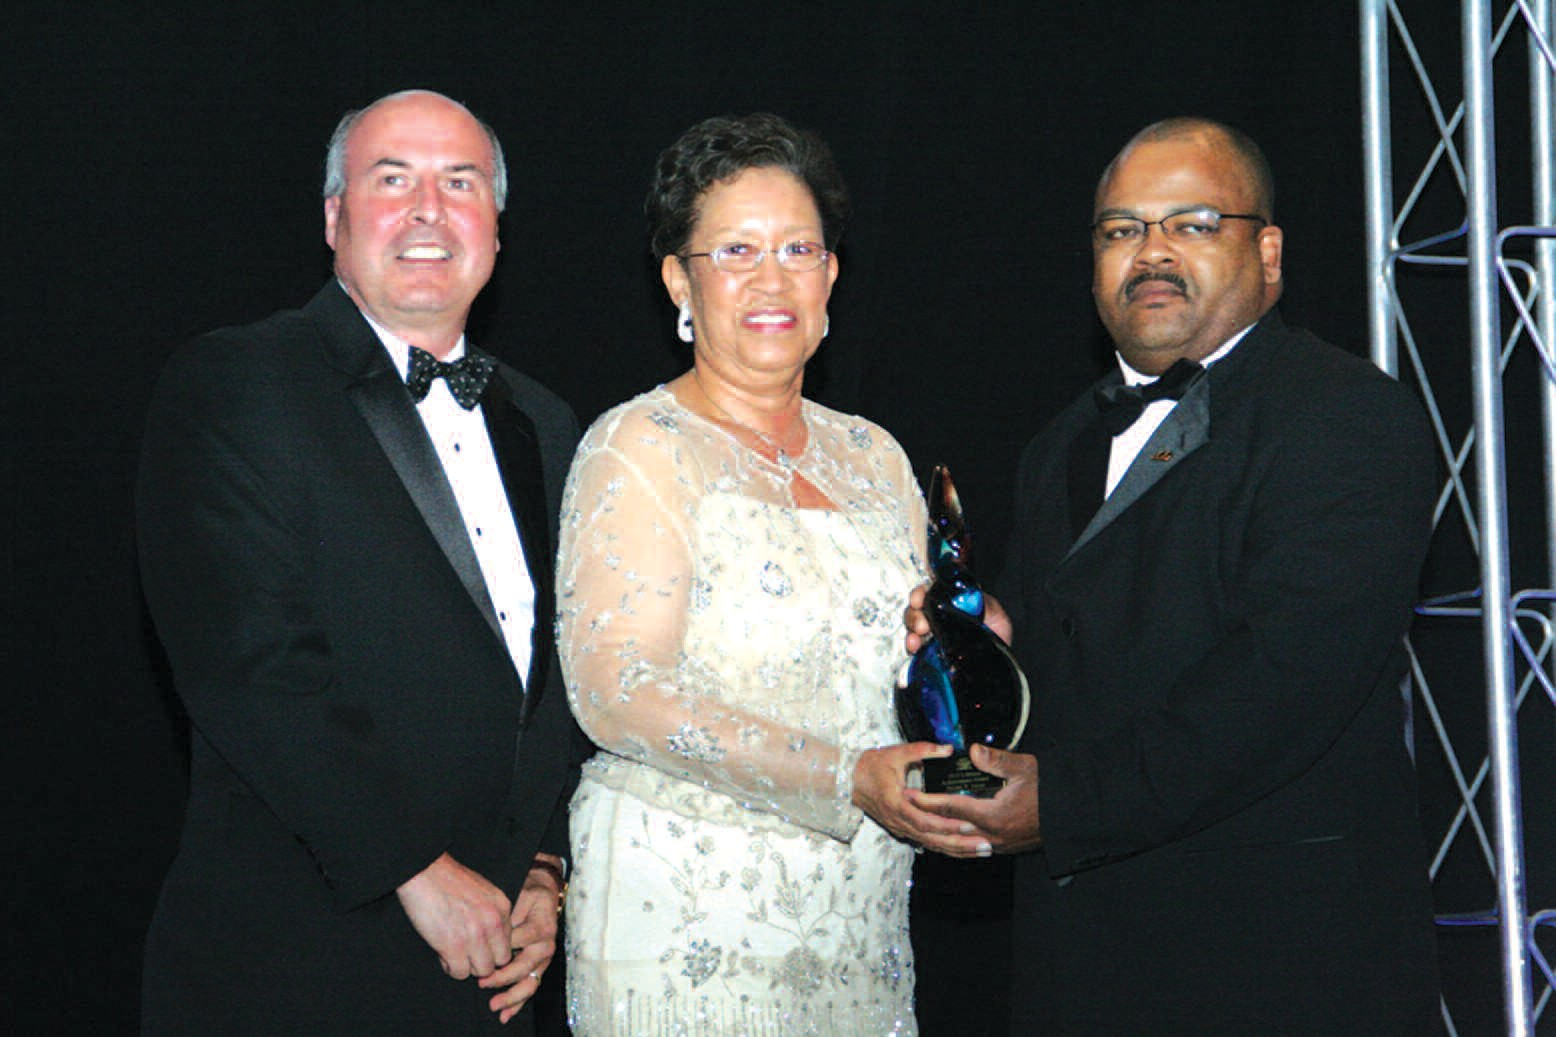 Shirley Barber James, (c) is pictured with Steve Brower and Ken Boler. Photo courtesy of D &D Photography